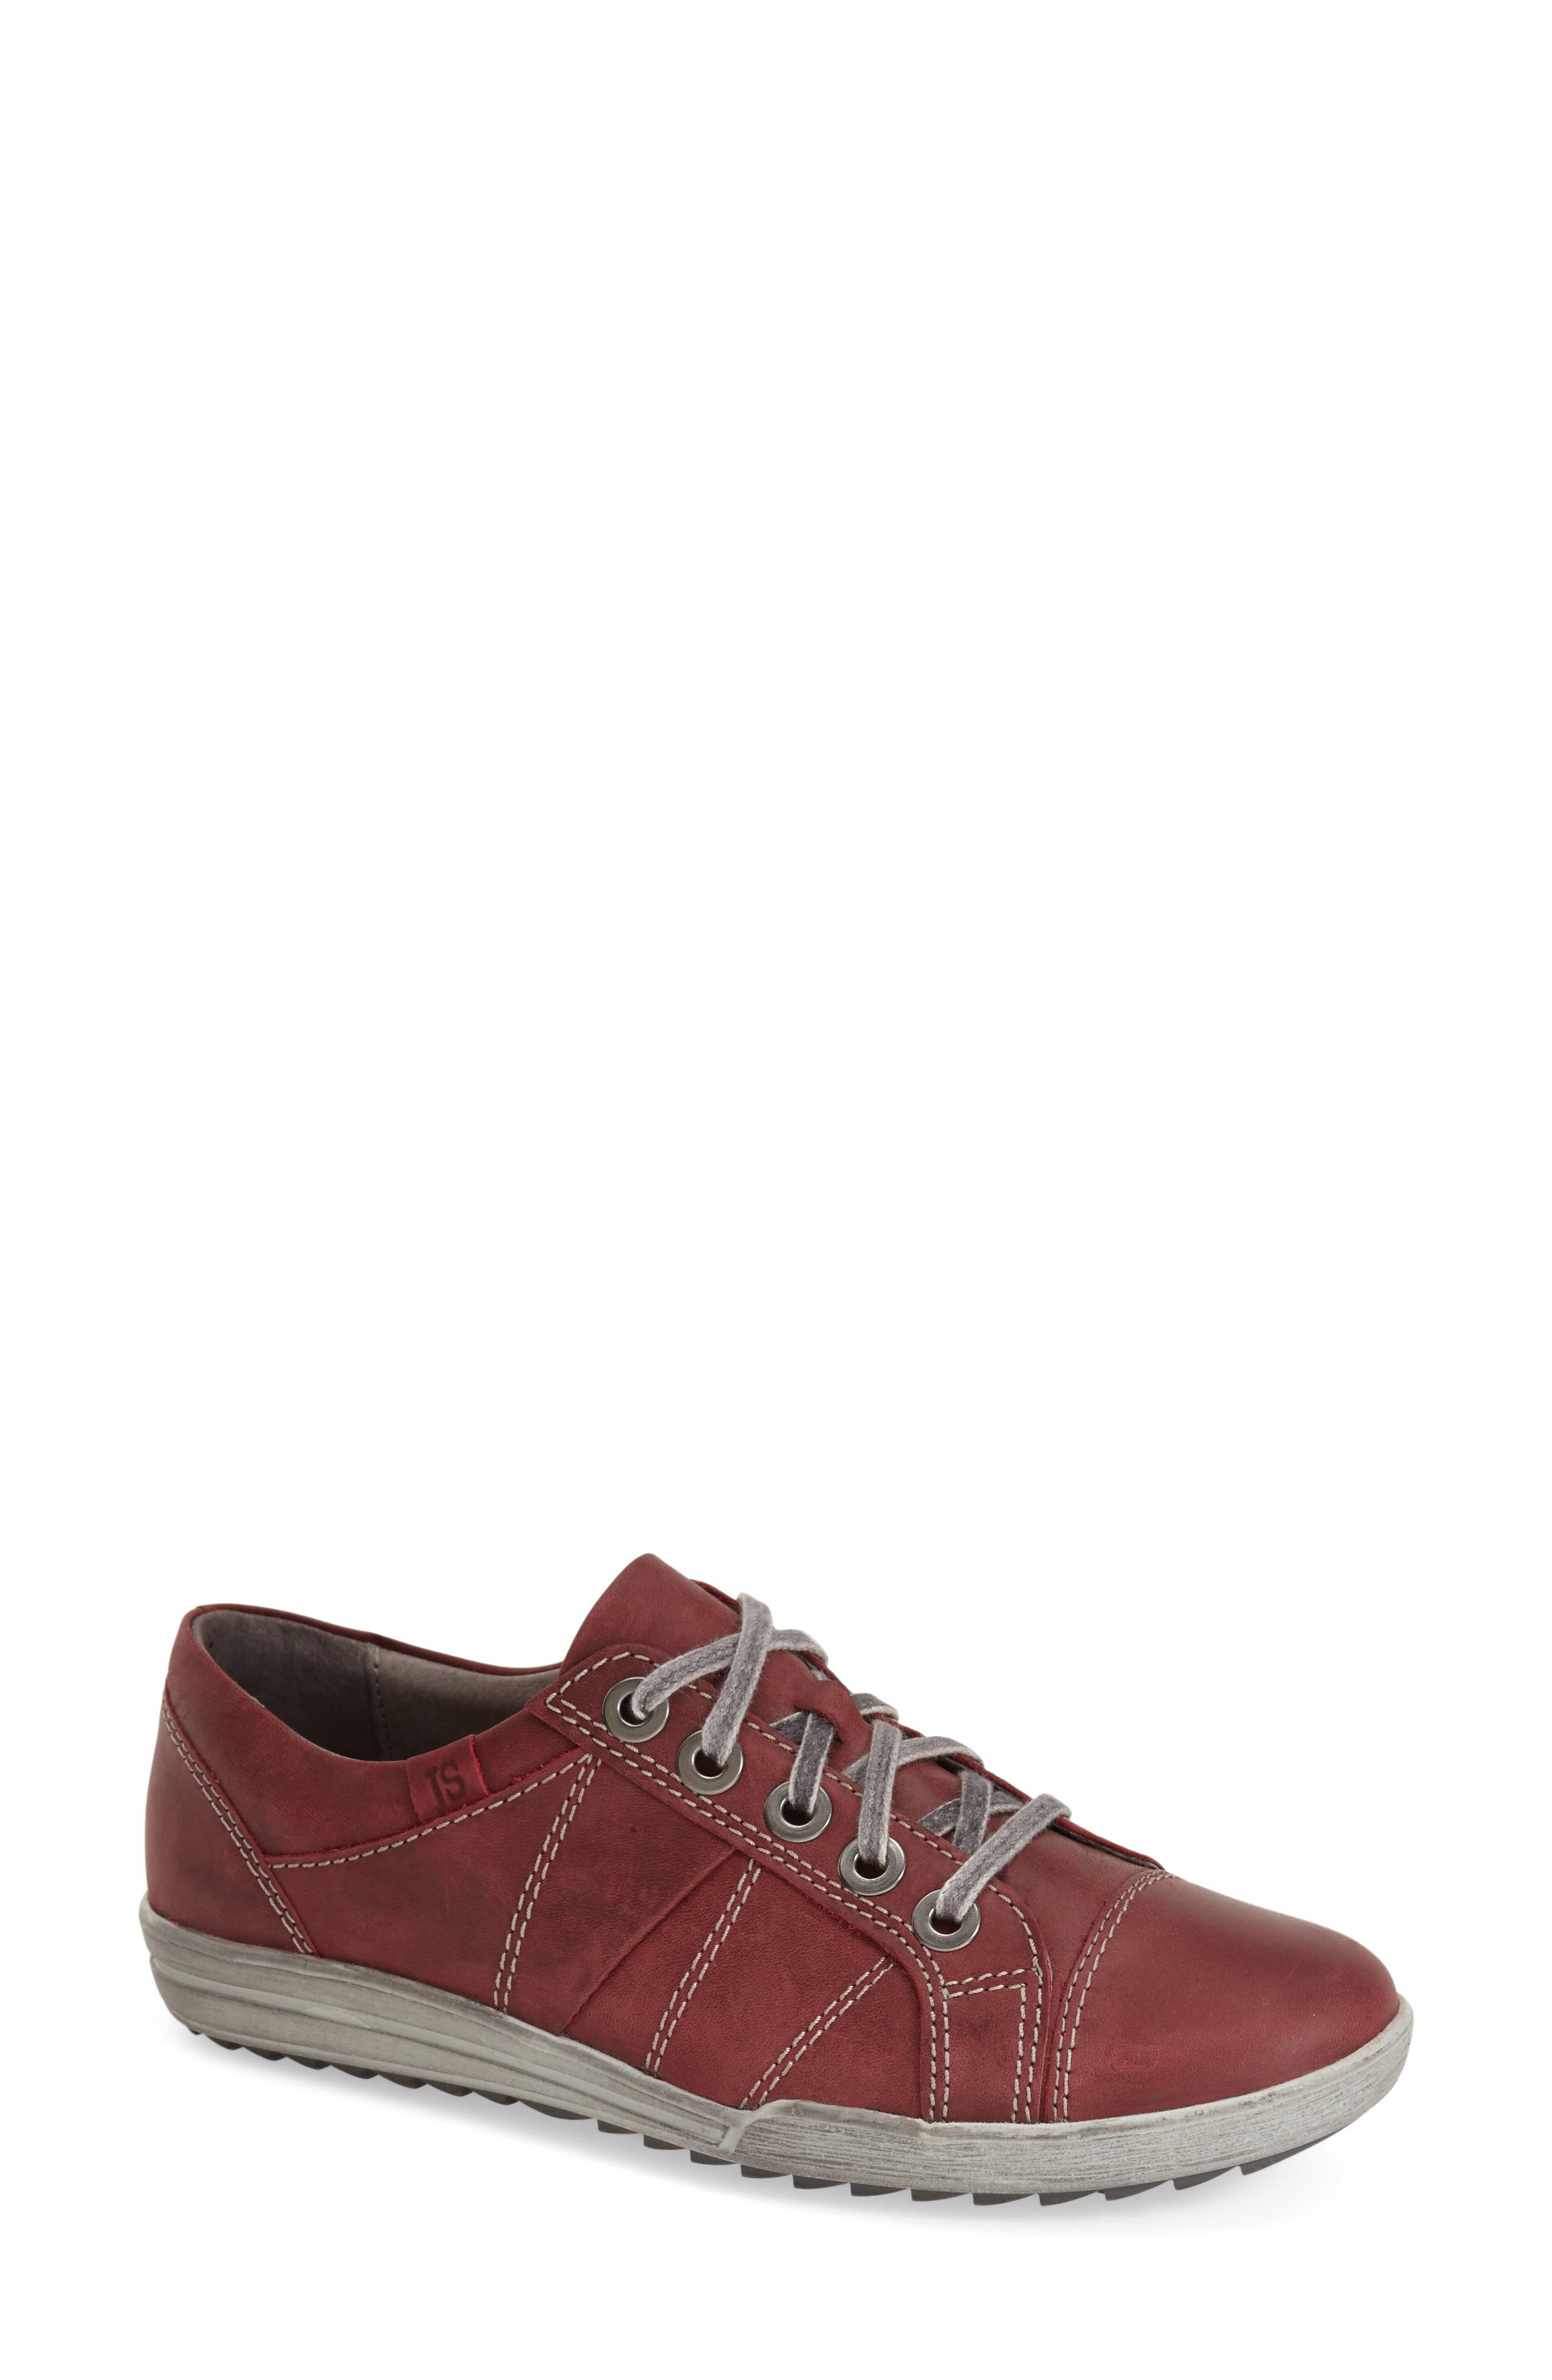 'Dany 05' Leather Sneaker,                             Alternate thumbnail 27, color,